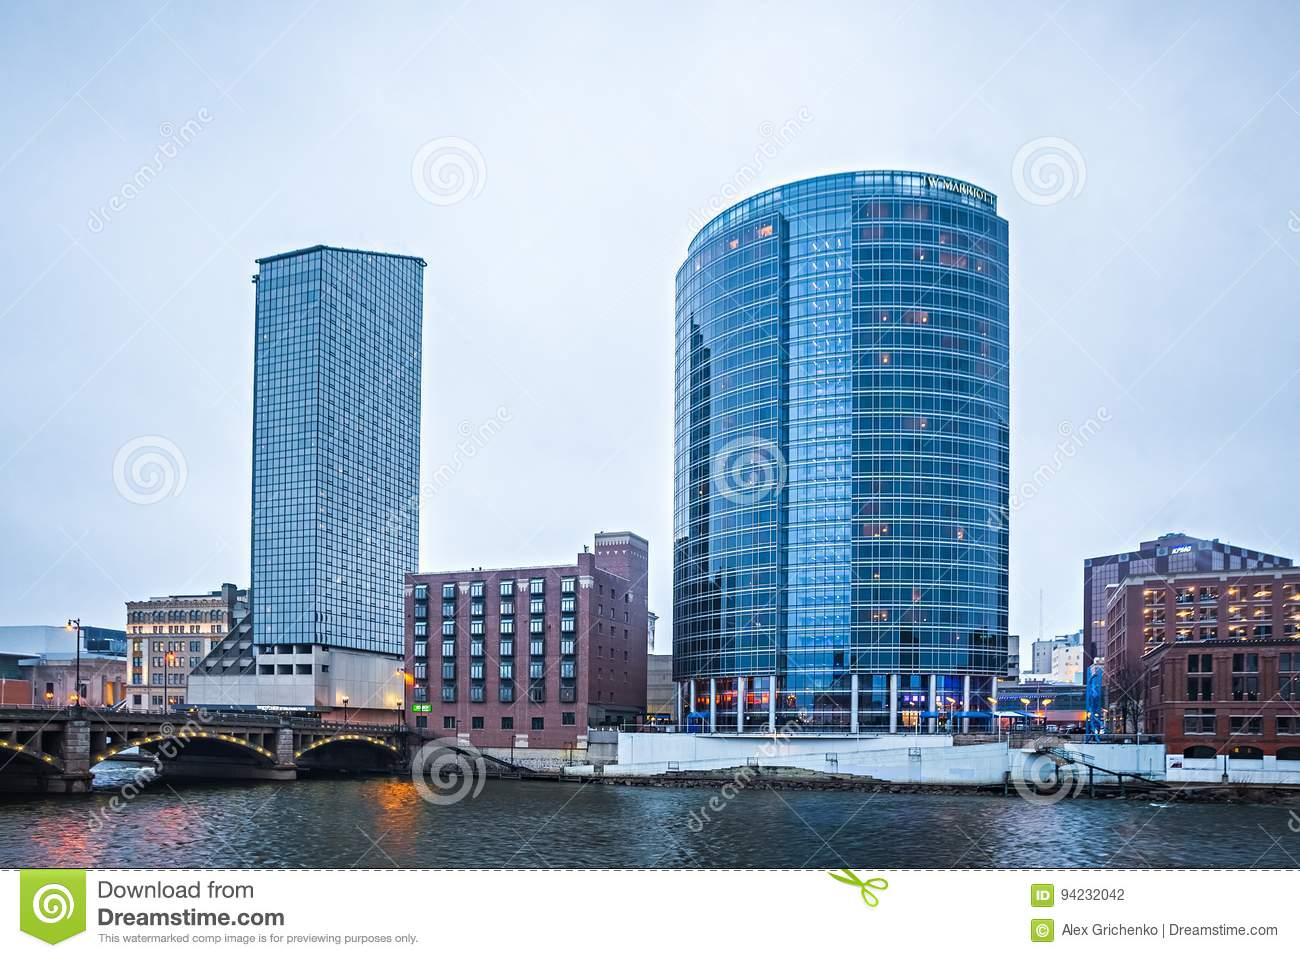 Stadtskyline und -Straßenbilder Grand Rapids Michigan